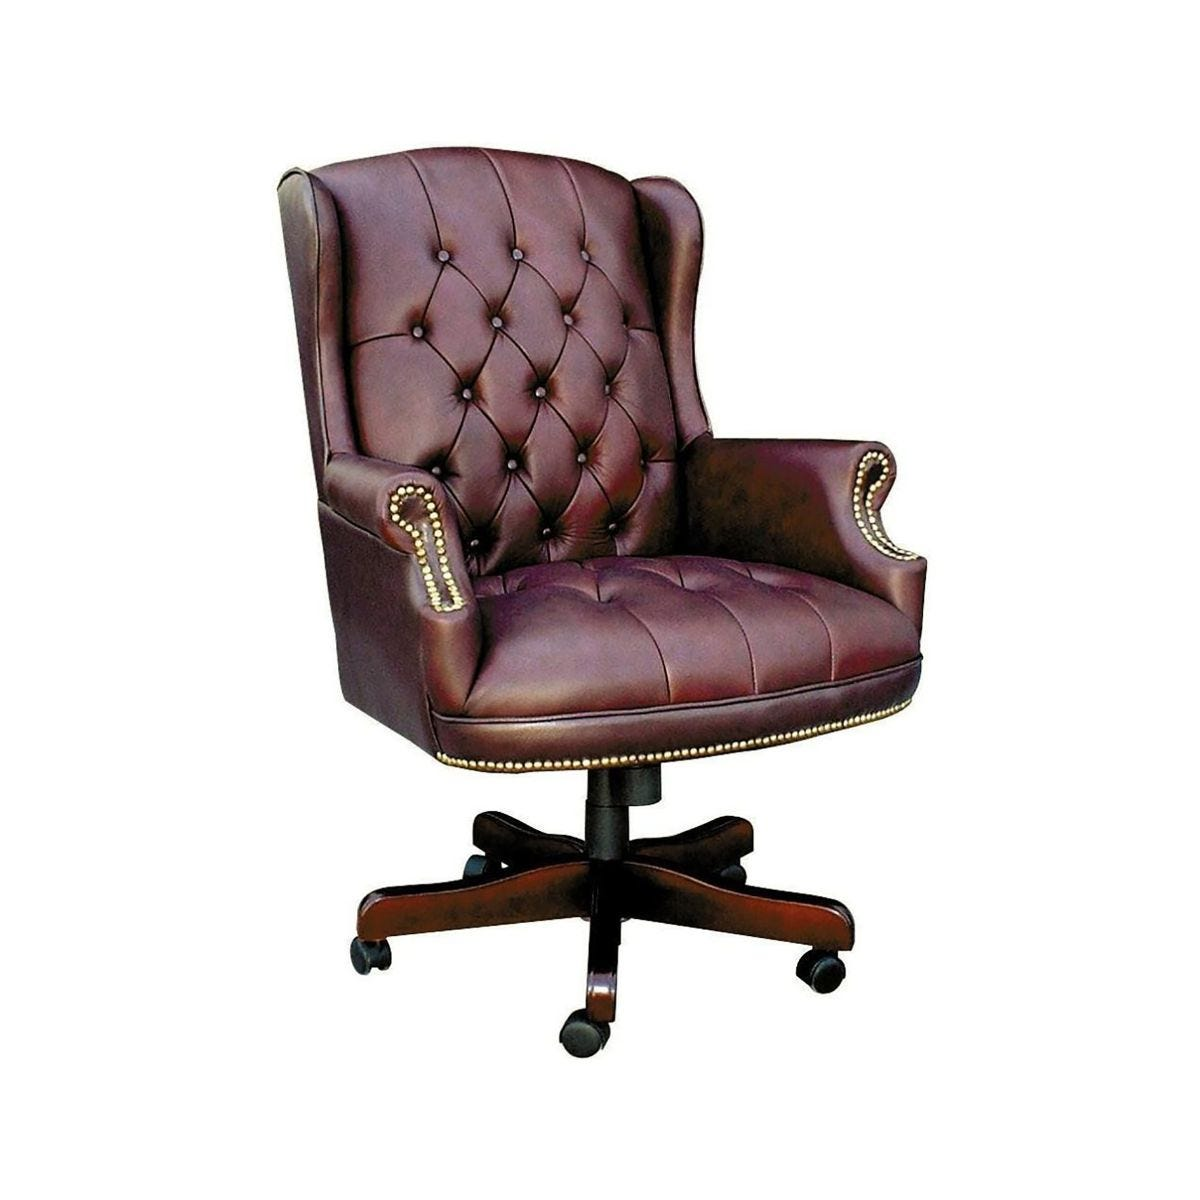 Teknik Office Chairman Swivel Executive Office Chair, Burgundy